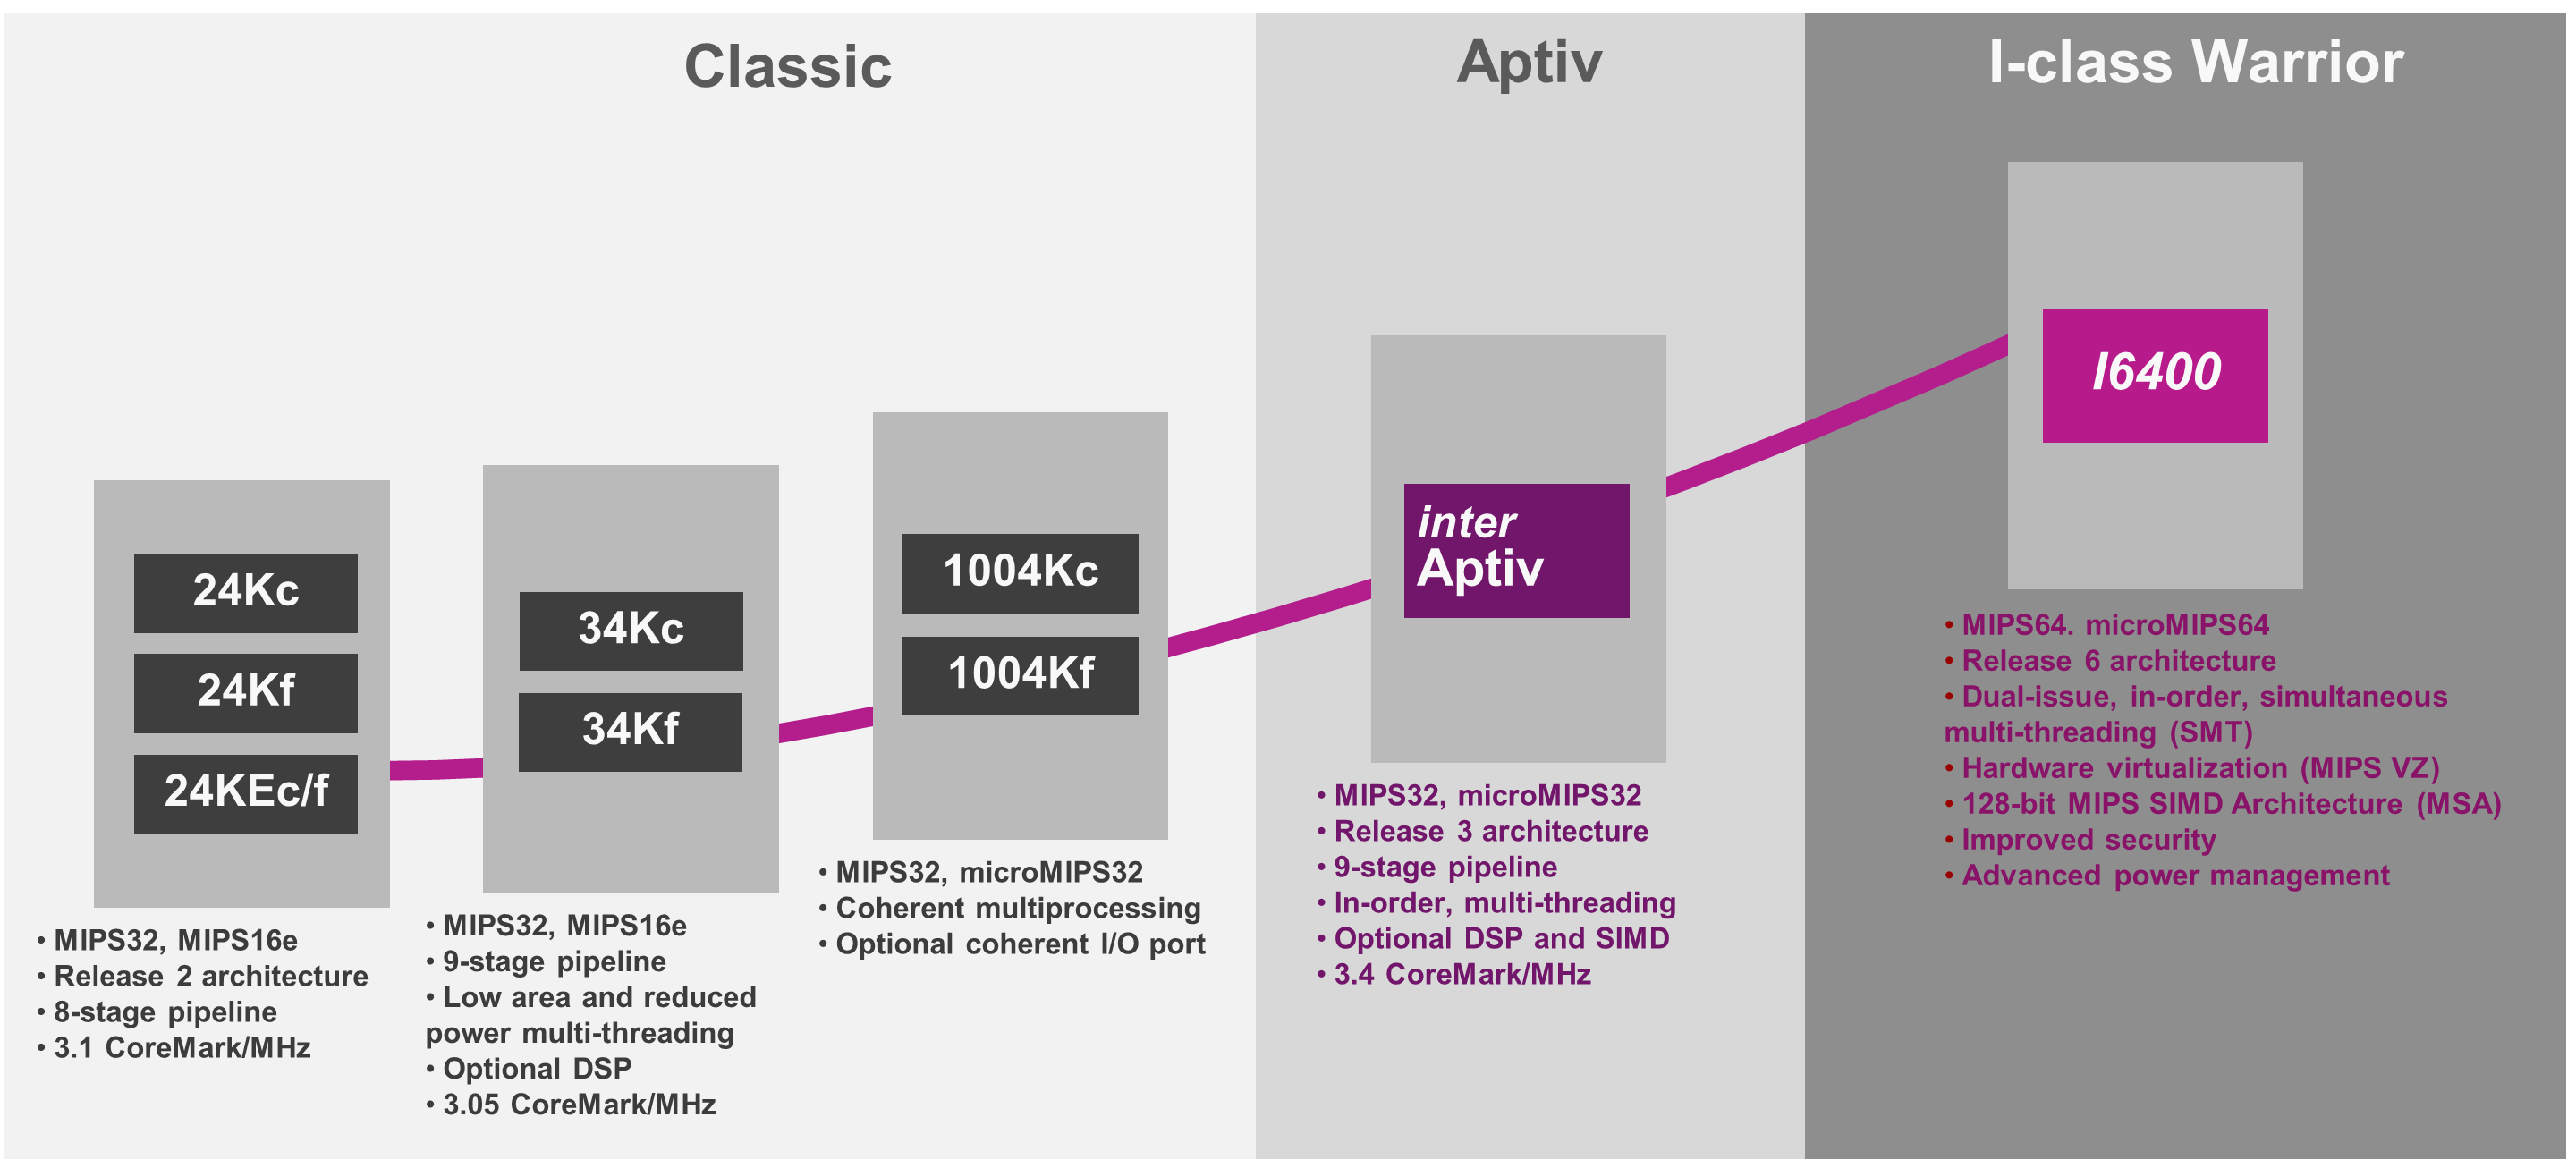 The-evolution-of-MIPS-CPUs-I-class-_multithreading